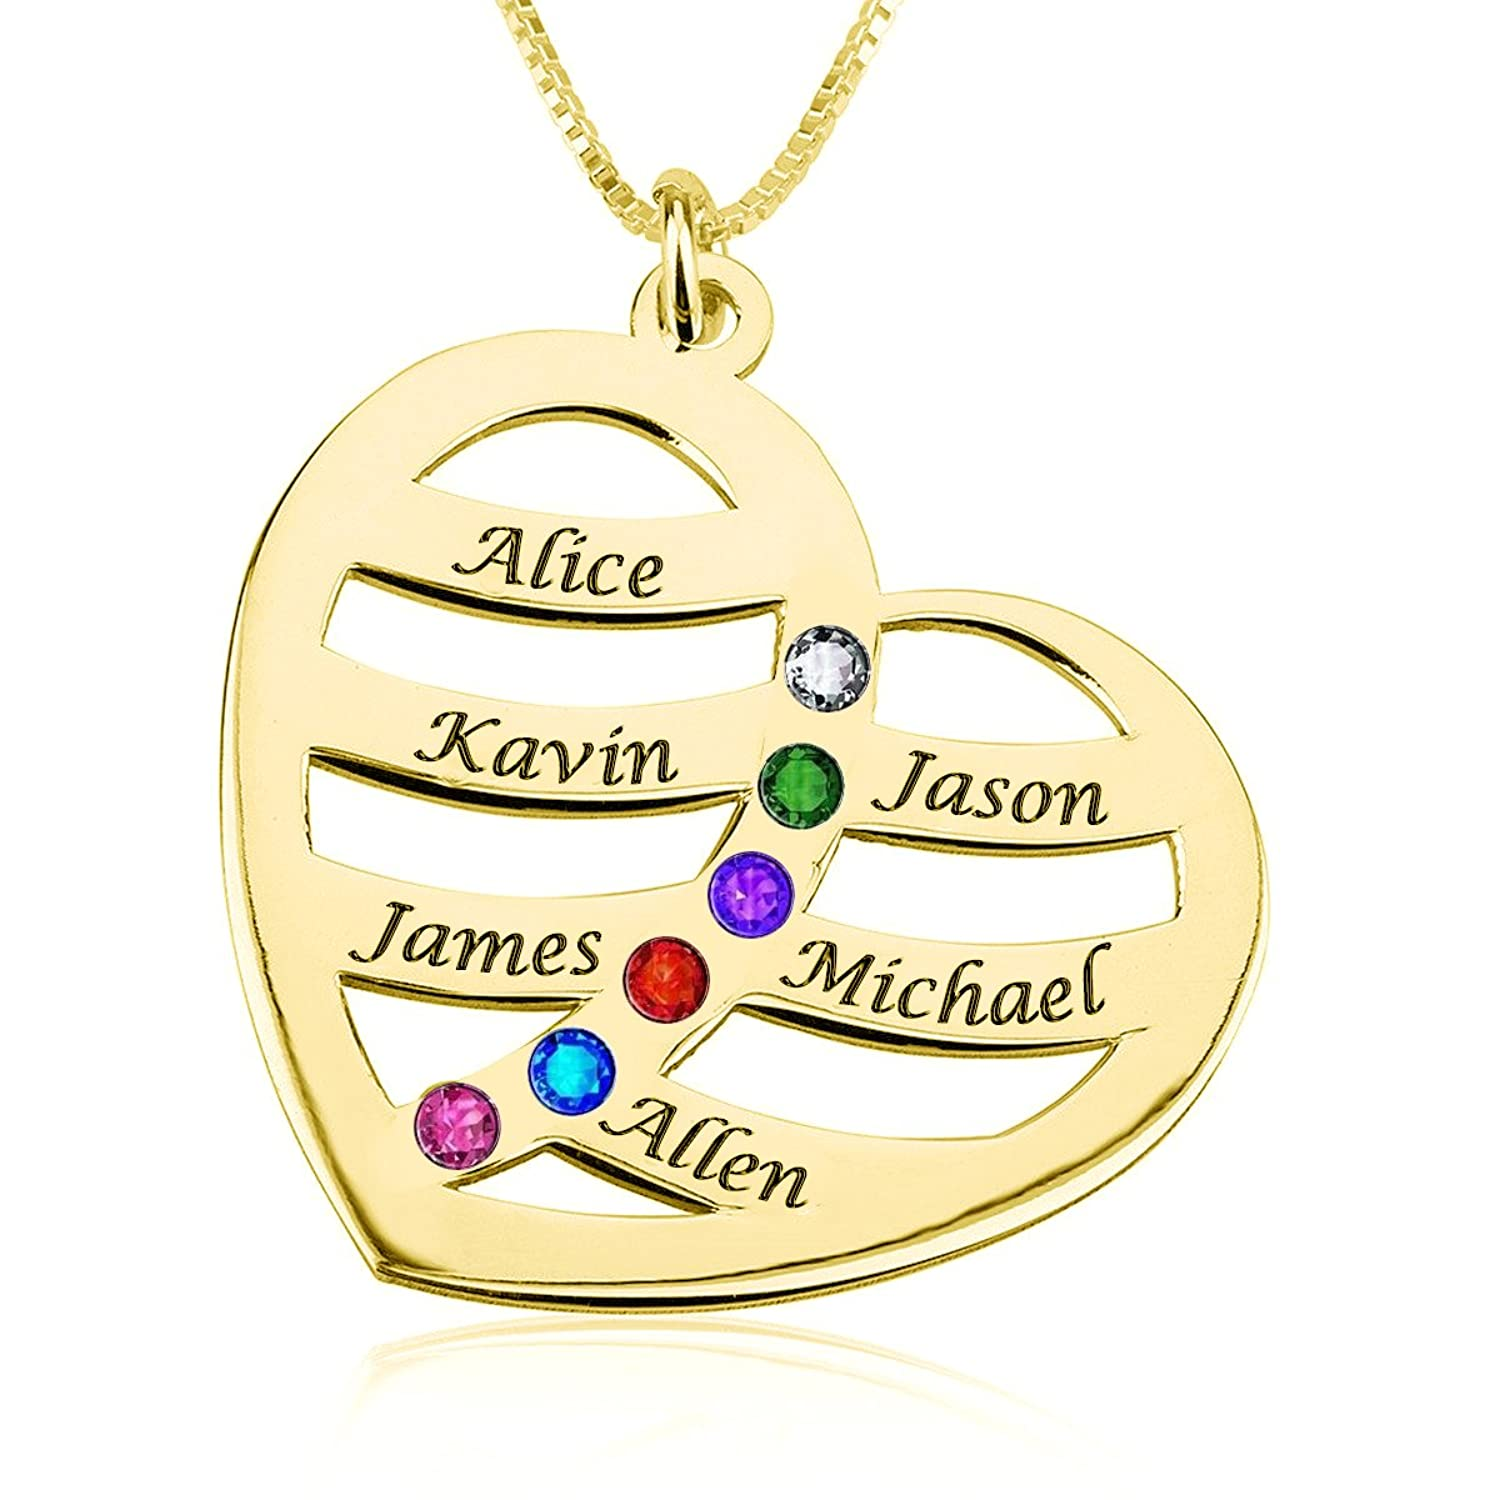 925 Sterling Silver Personalized Heart Family Name Necklace with Birthstone Custom Made with Any Names